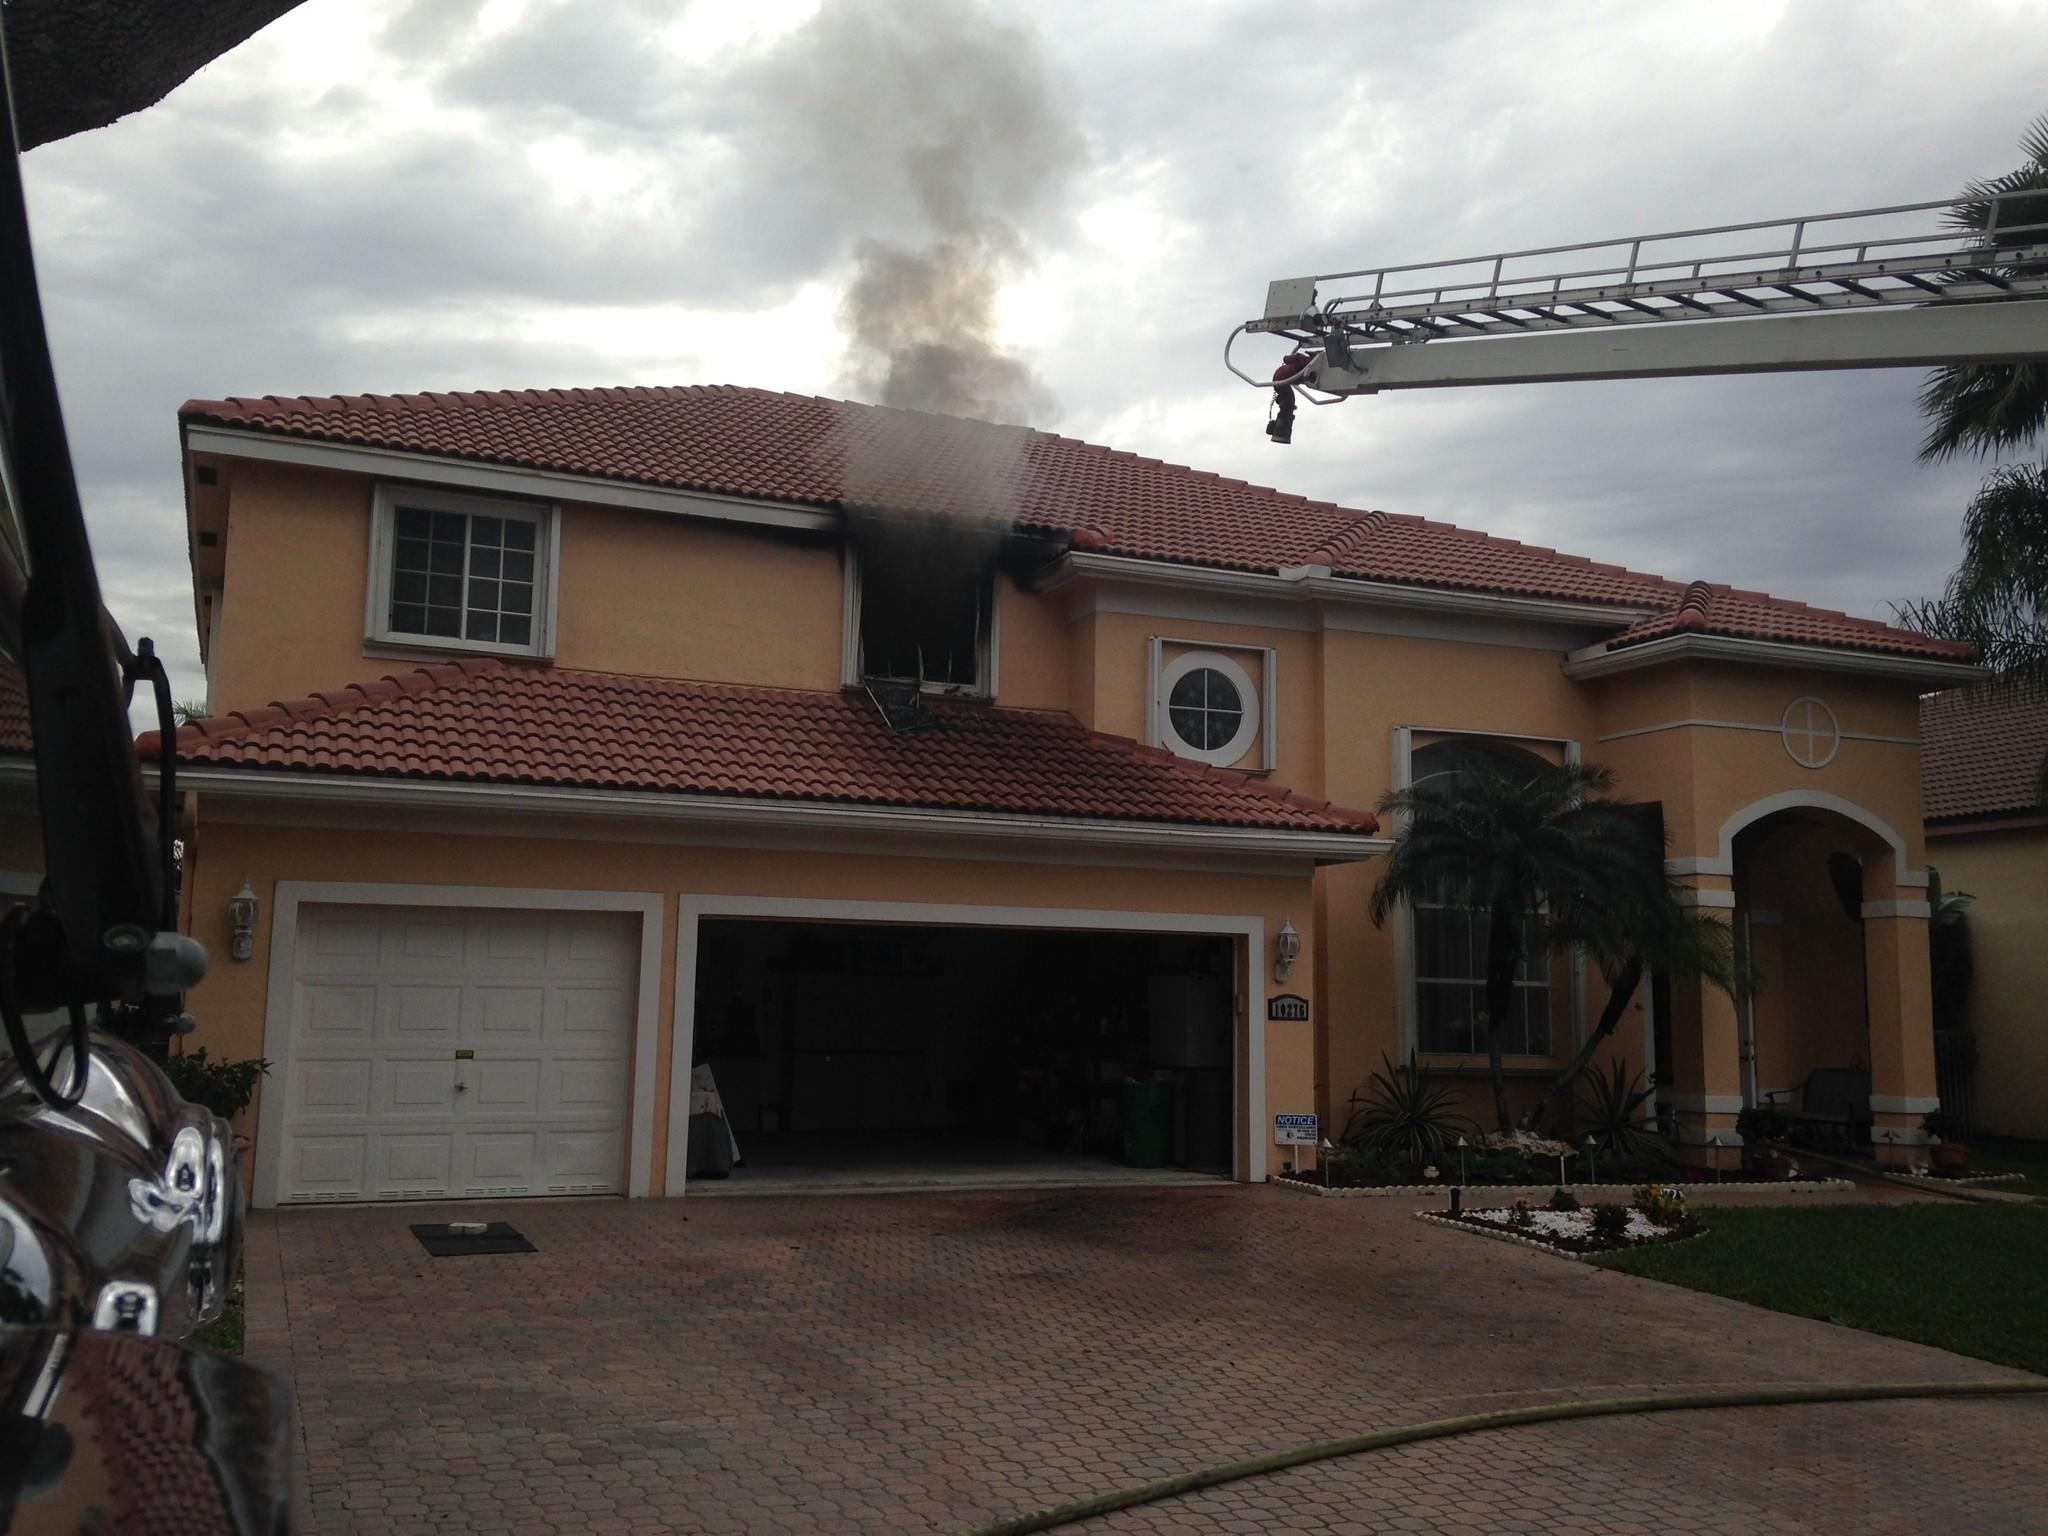 A man and an elderly woman escaped the flames in a Coral Springs house fire